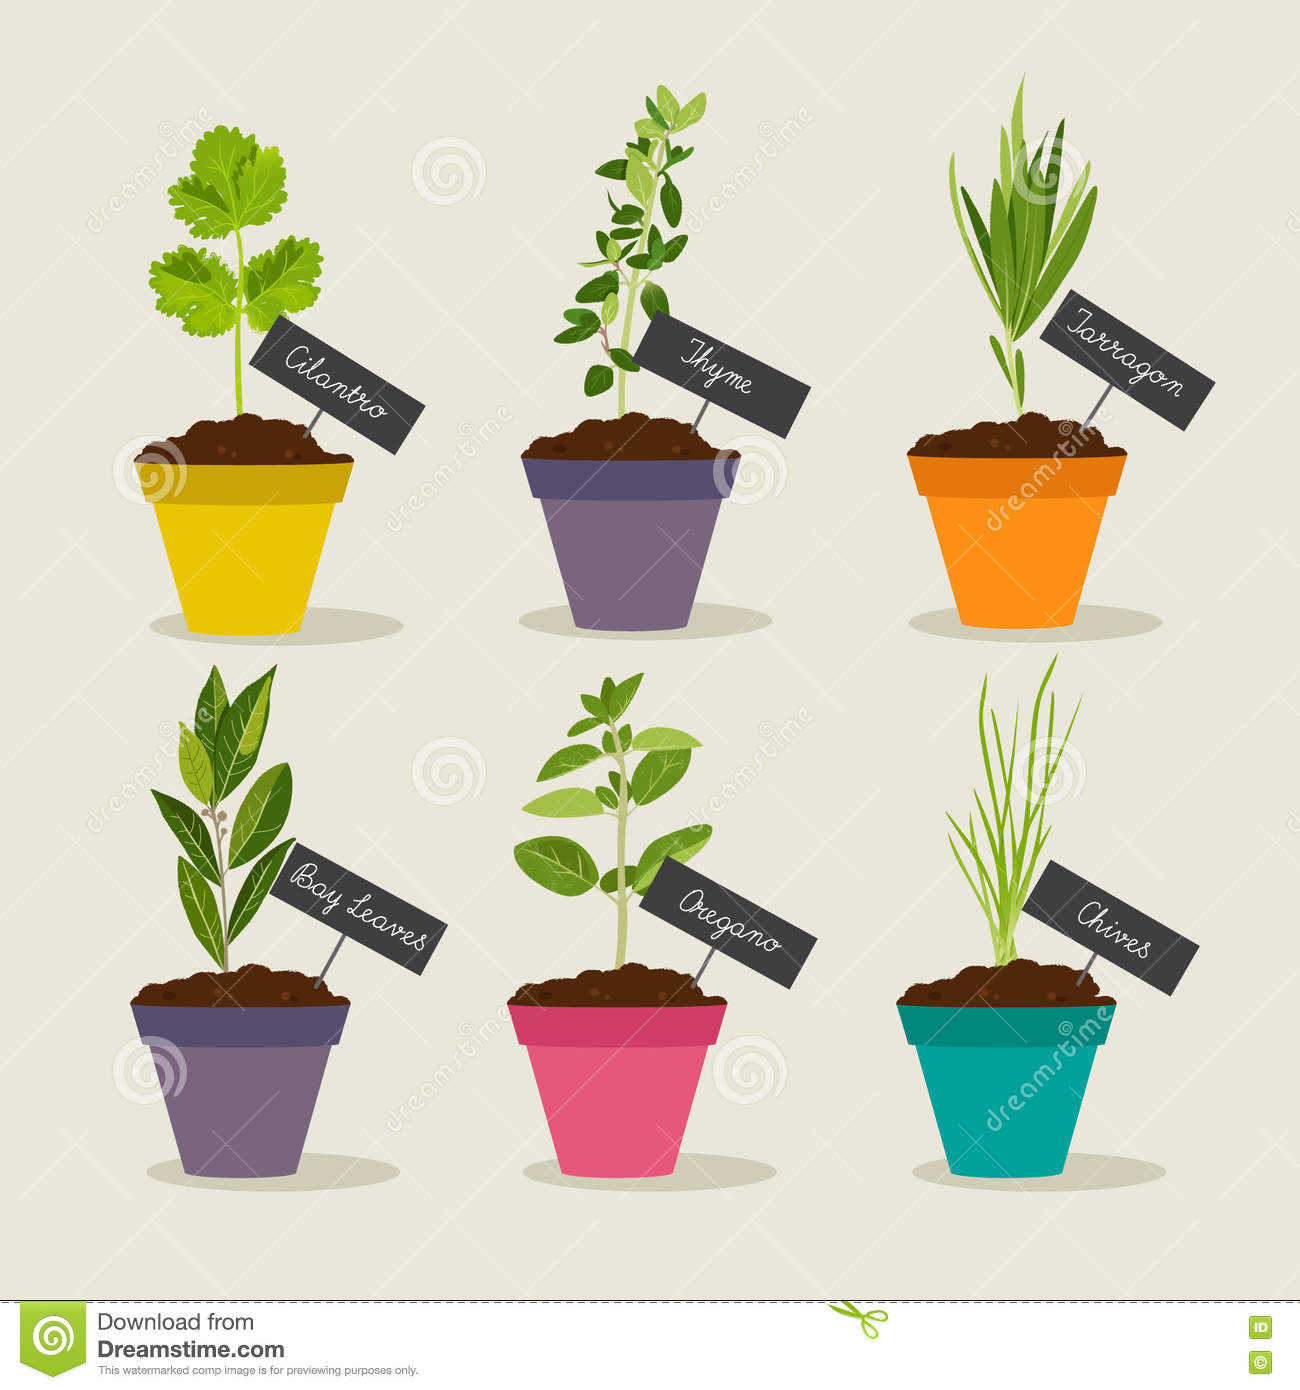 Royalty Free Vector. Download Herb Garden With Pots ...